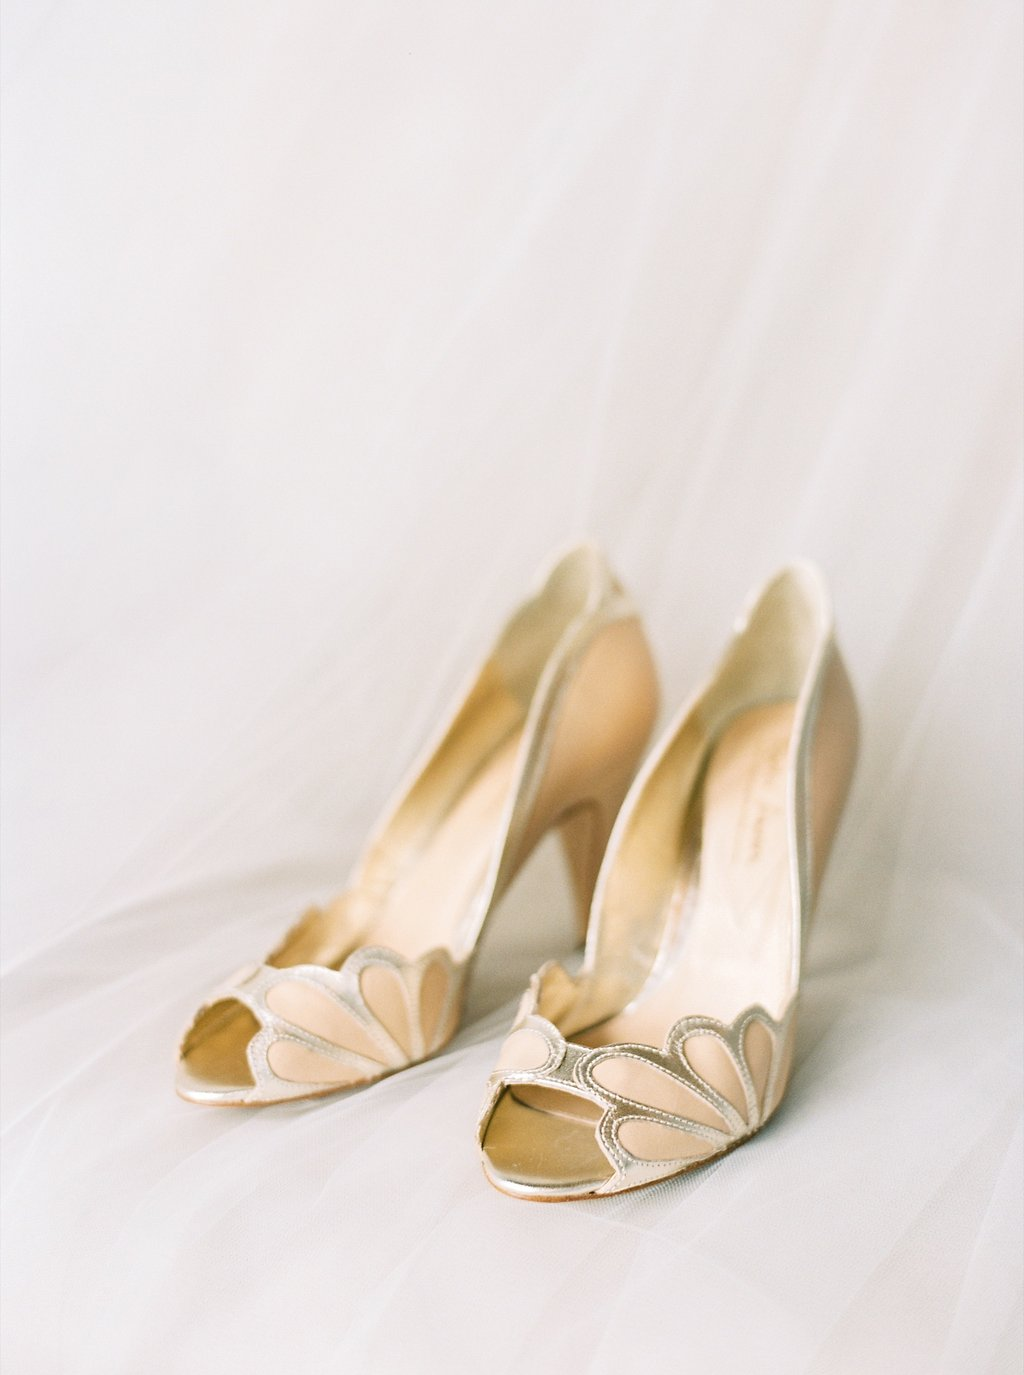 BHLDN Blush and Gold Scalloped Bridal Heels | Simply Jessica Marie's Bridal Accessories | Photo by Perry Vaile Photography